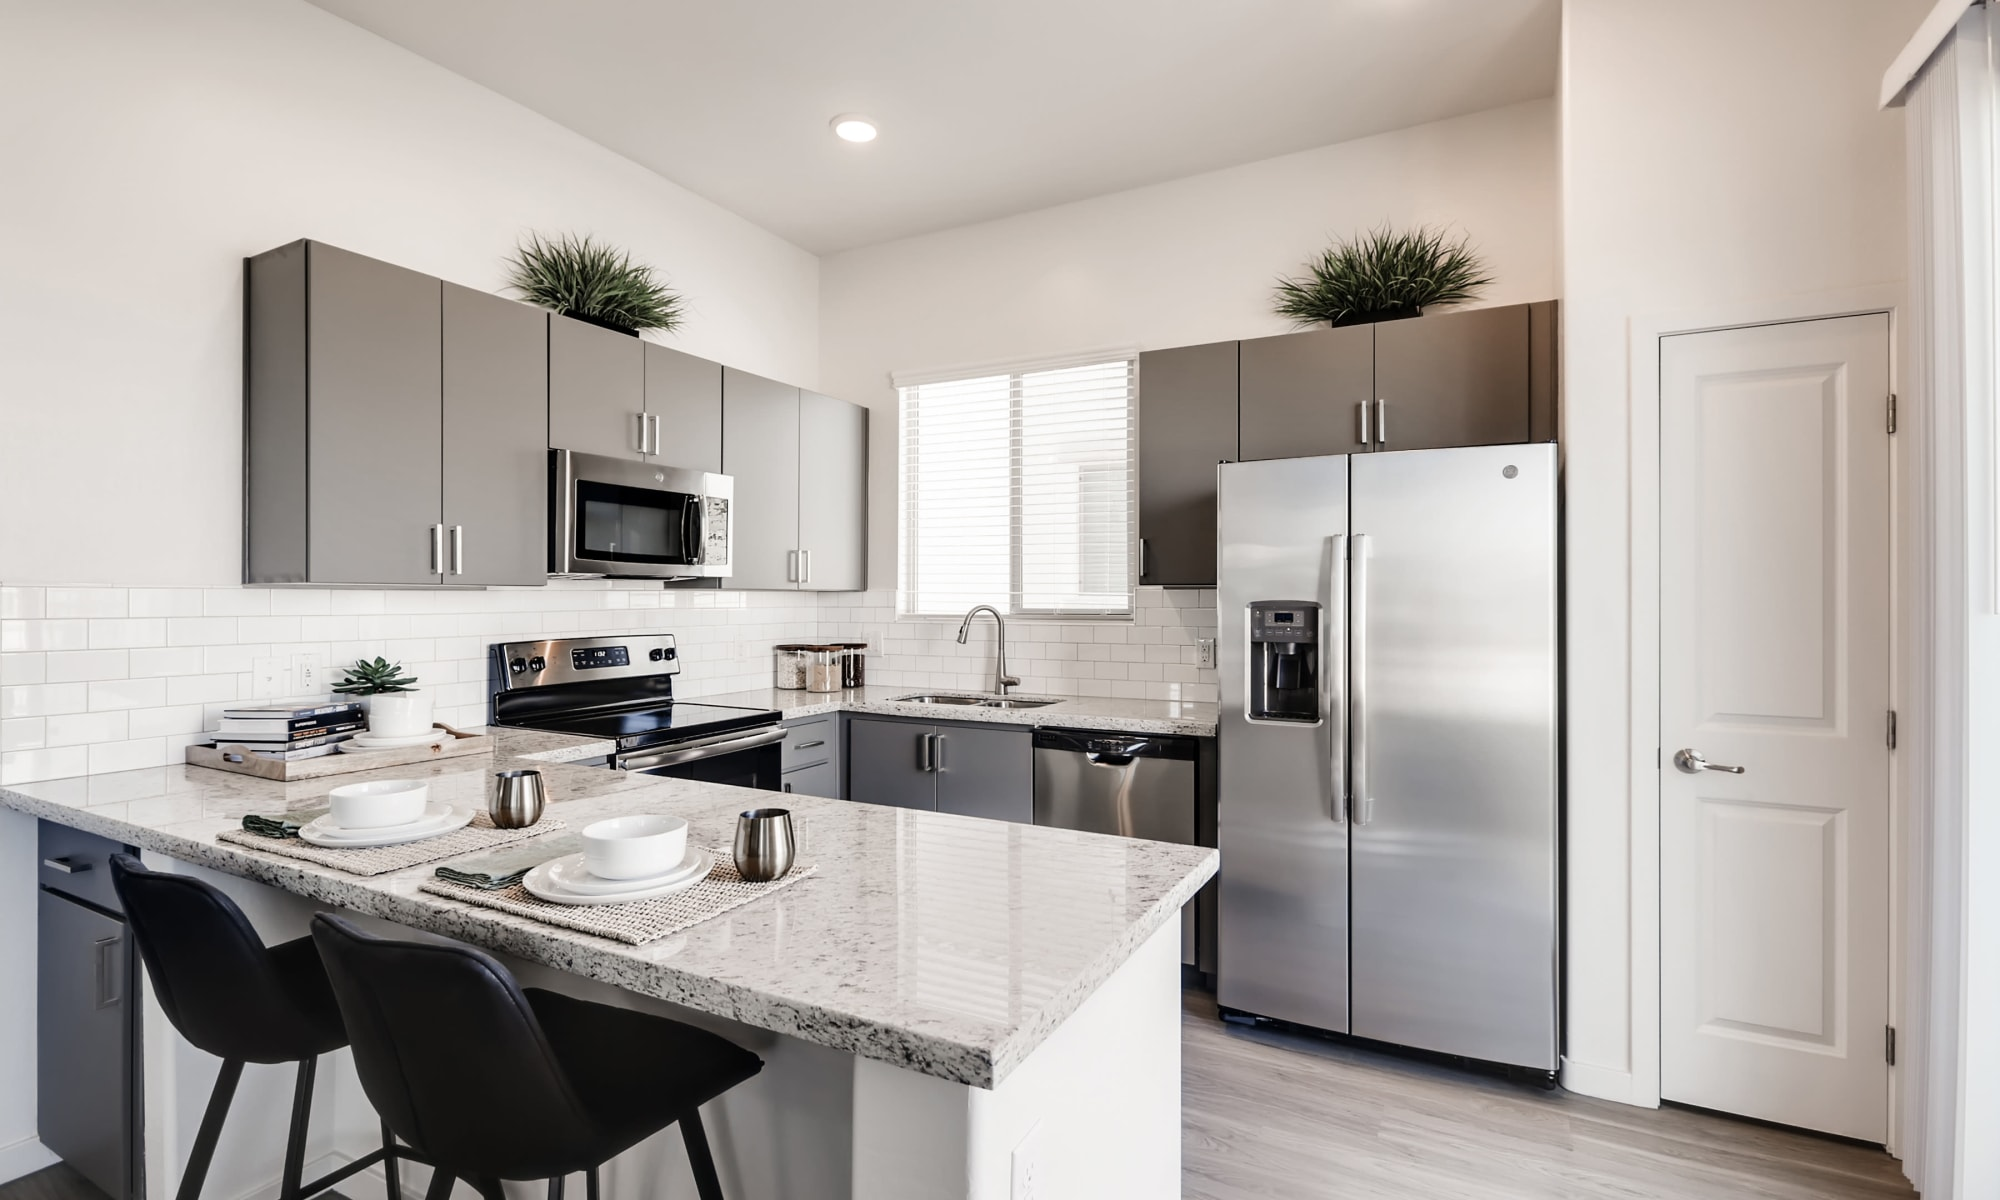 Avilla Lago apartment homes in Peoria, Arizona